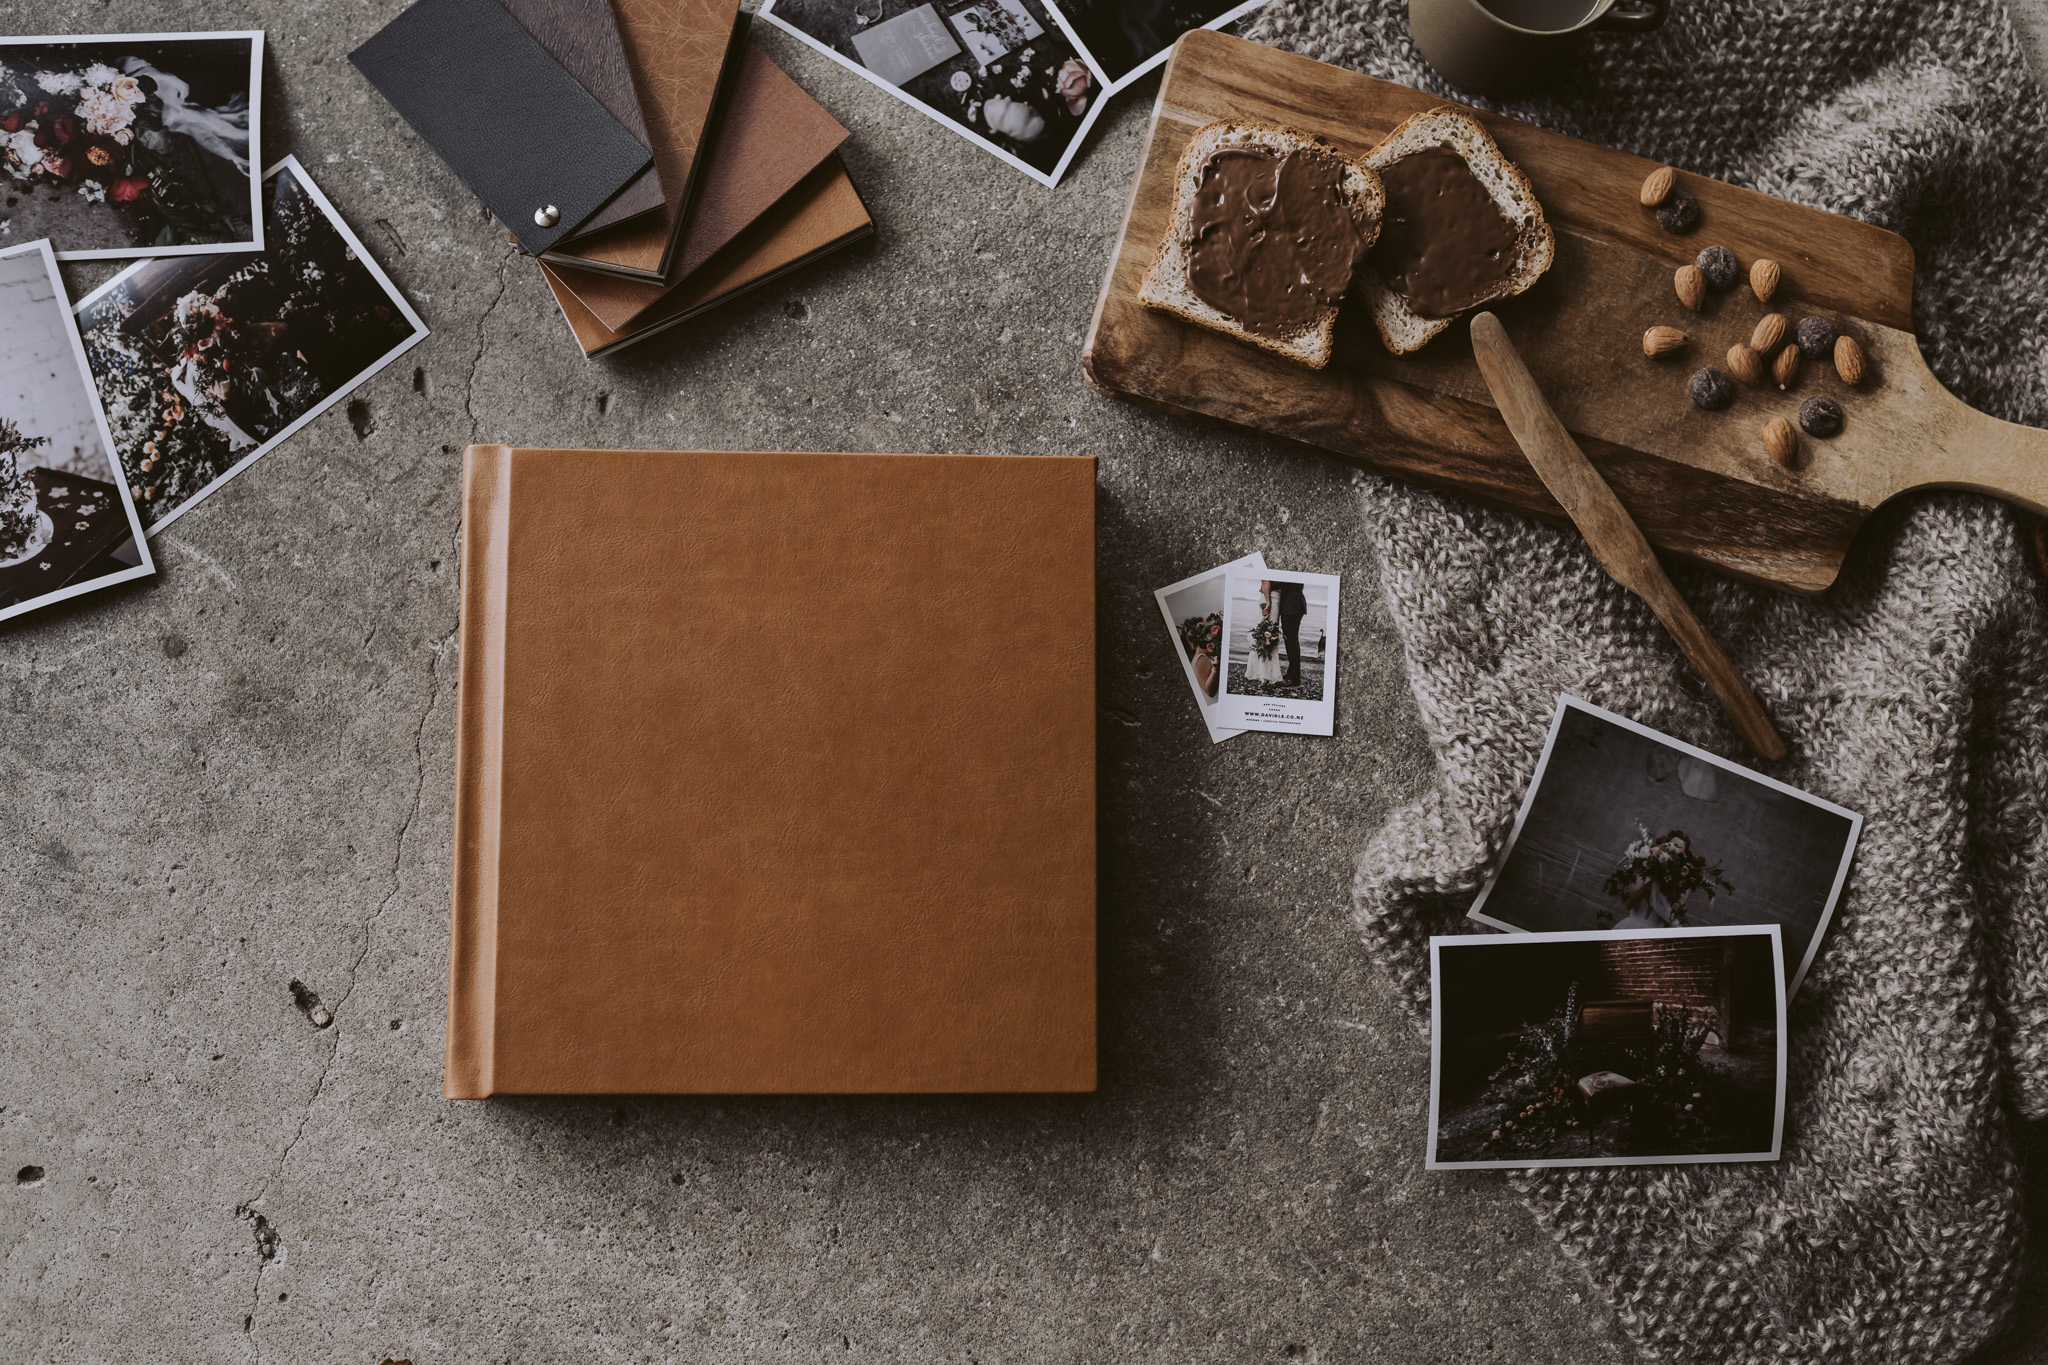 Testing out the  Momento Pro  flush mount wedding albums, this beauty in Butterscotch leather.